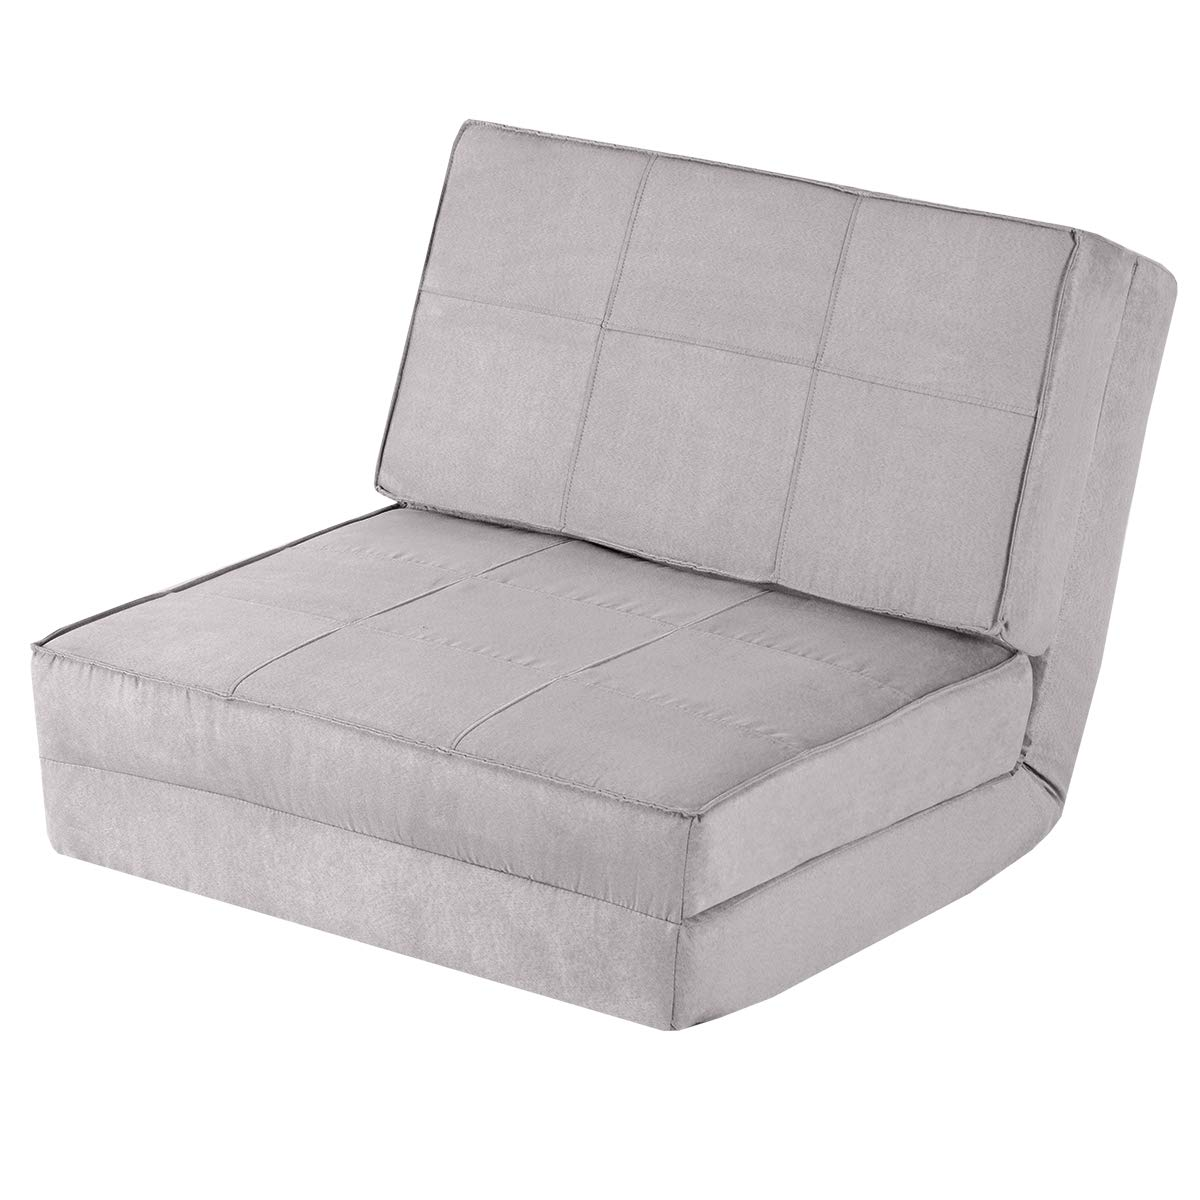 Giantex 5-Position Adjustable Convertible Flip Chair, Sleeper Dorm Game Bed Couch Lounger Sofa Chair Mattress Living Room Furniture, Gray by Giantex